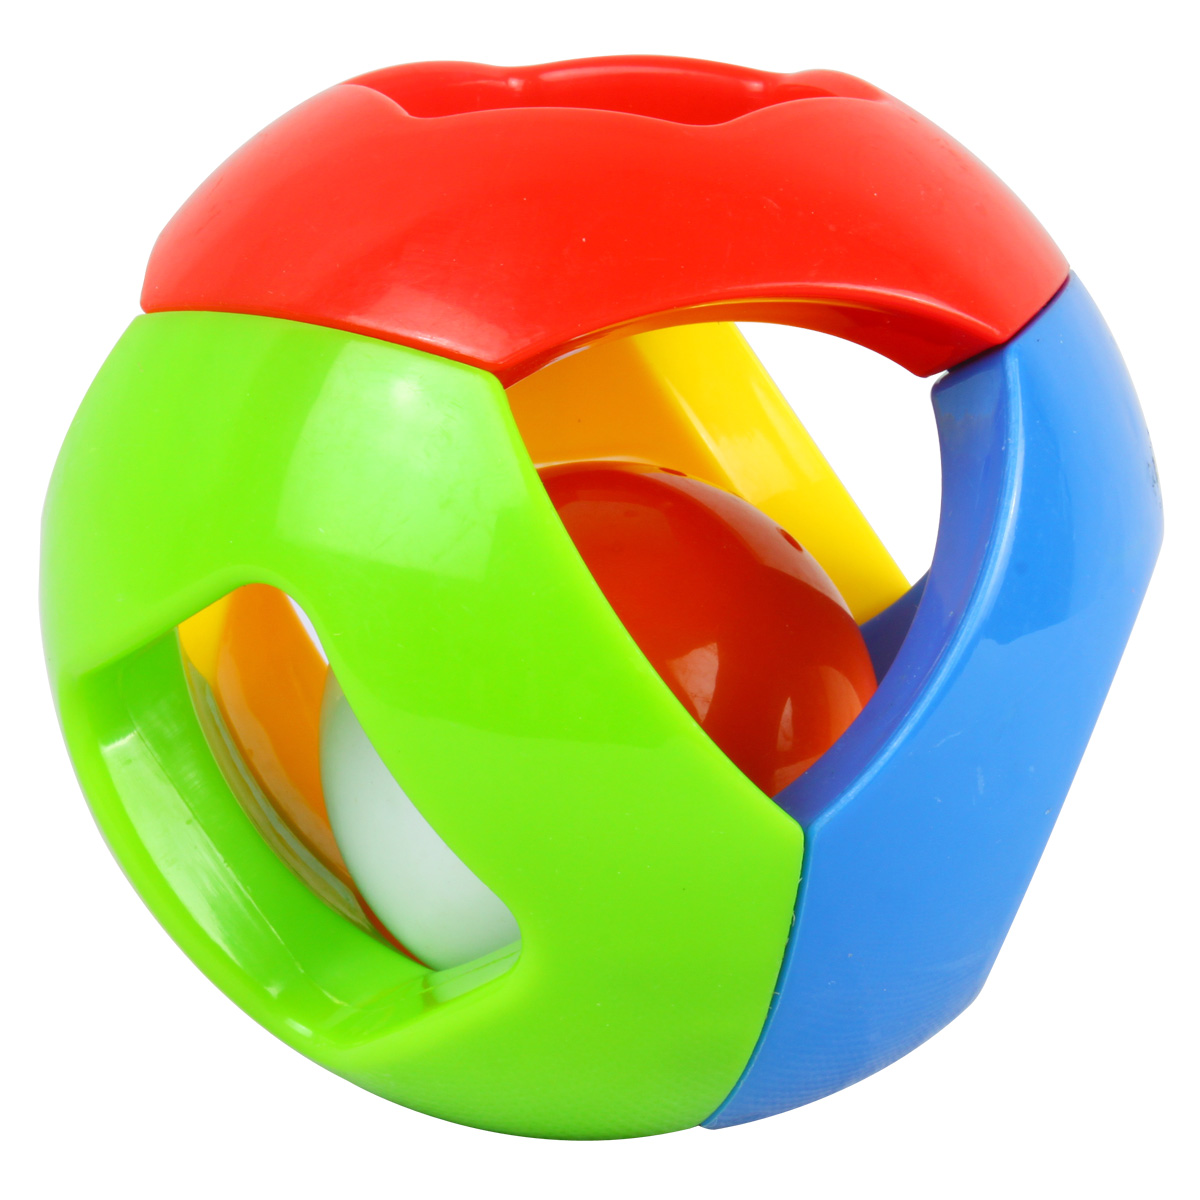 Toy Ball Clip Art : Baby toys pic clipart best